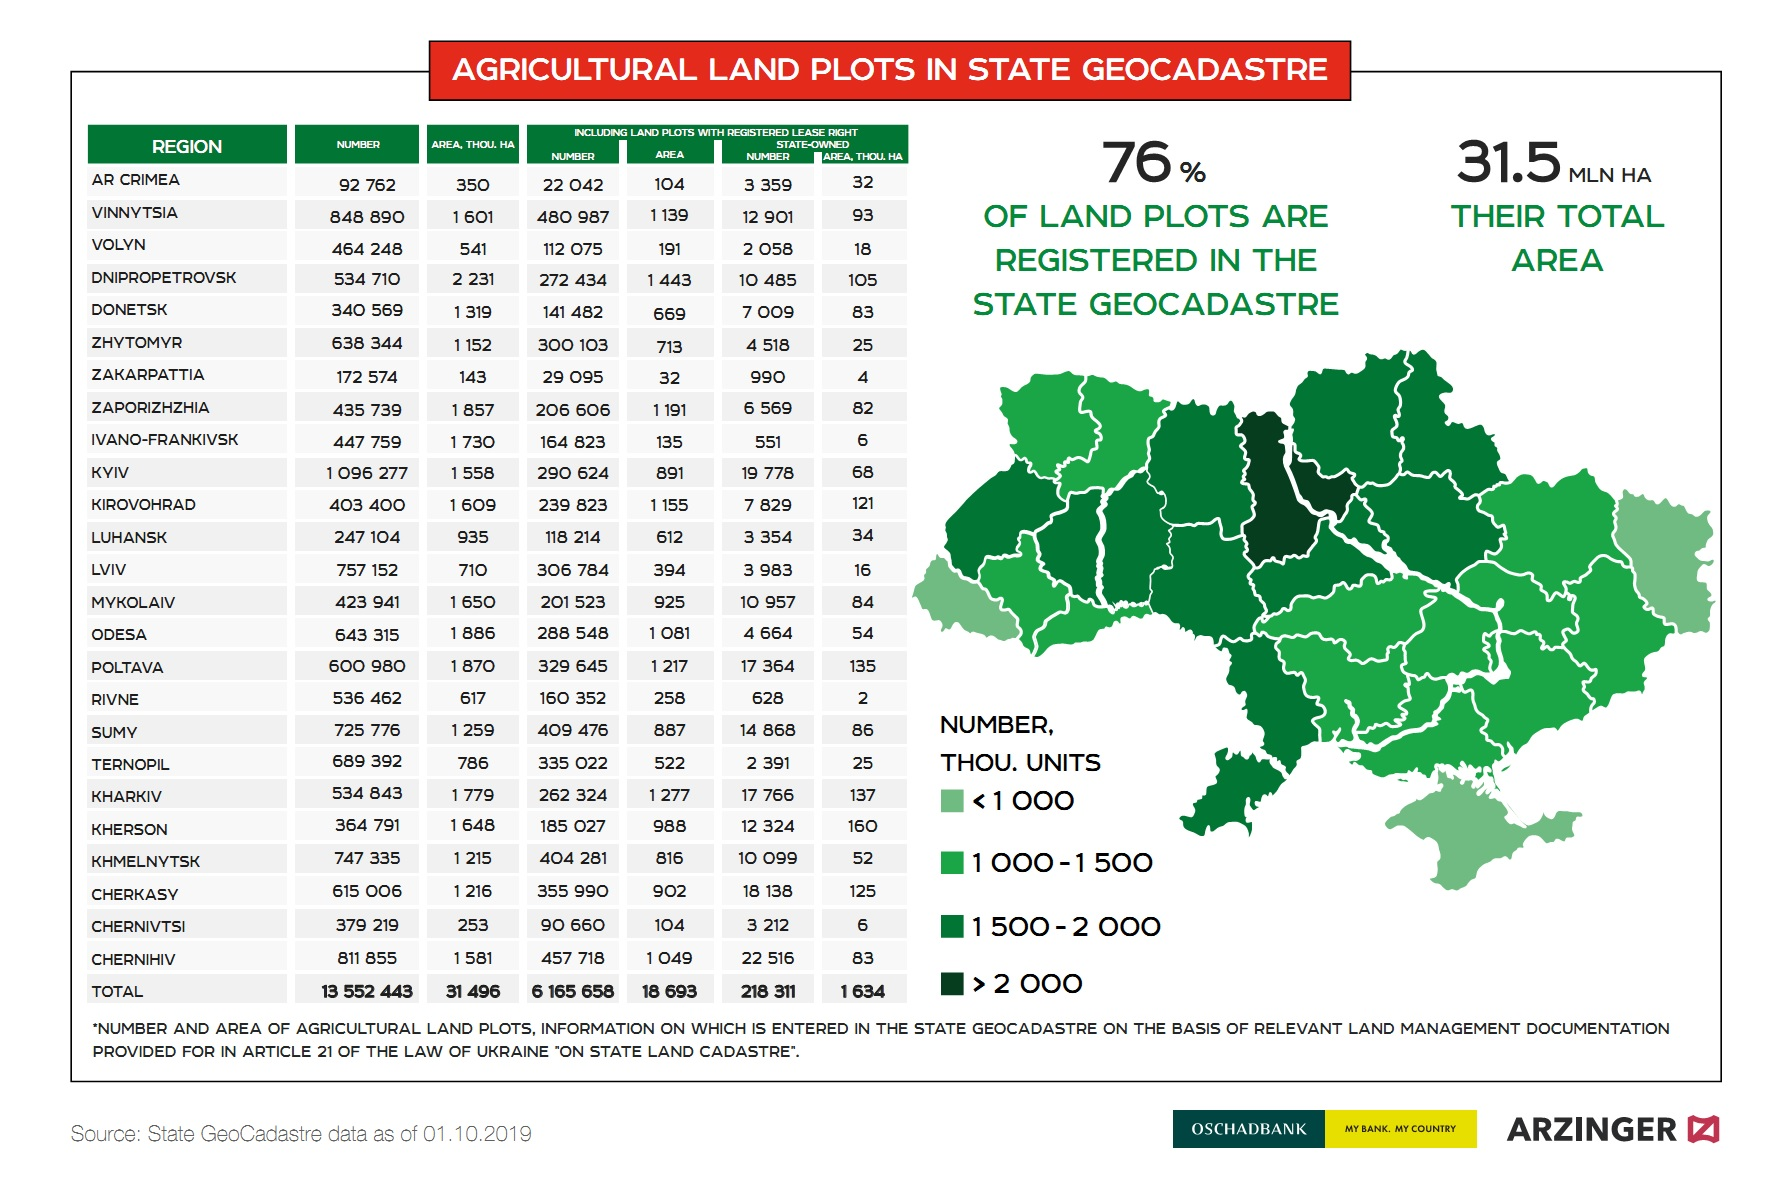 Agricultural land plots in the State GeoCadastre of Ukraine (click for full resolution)